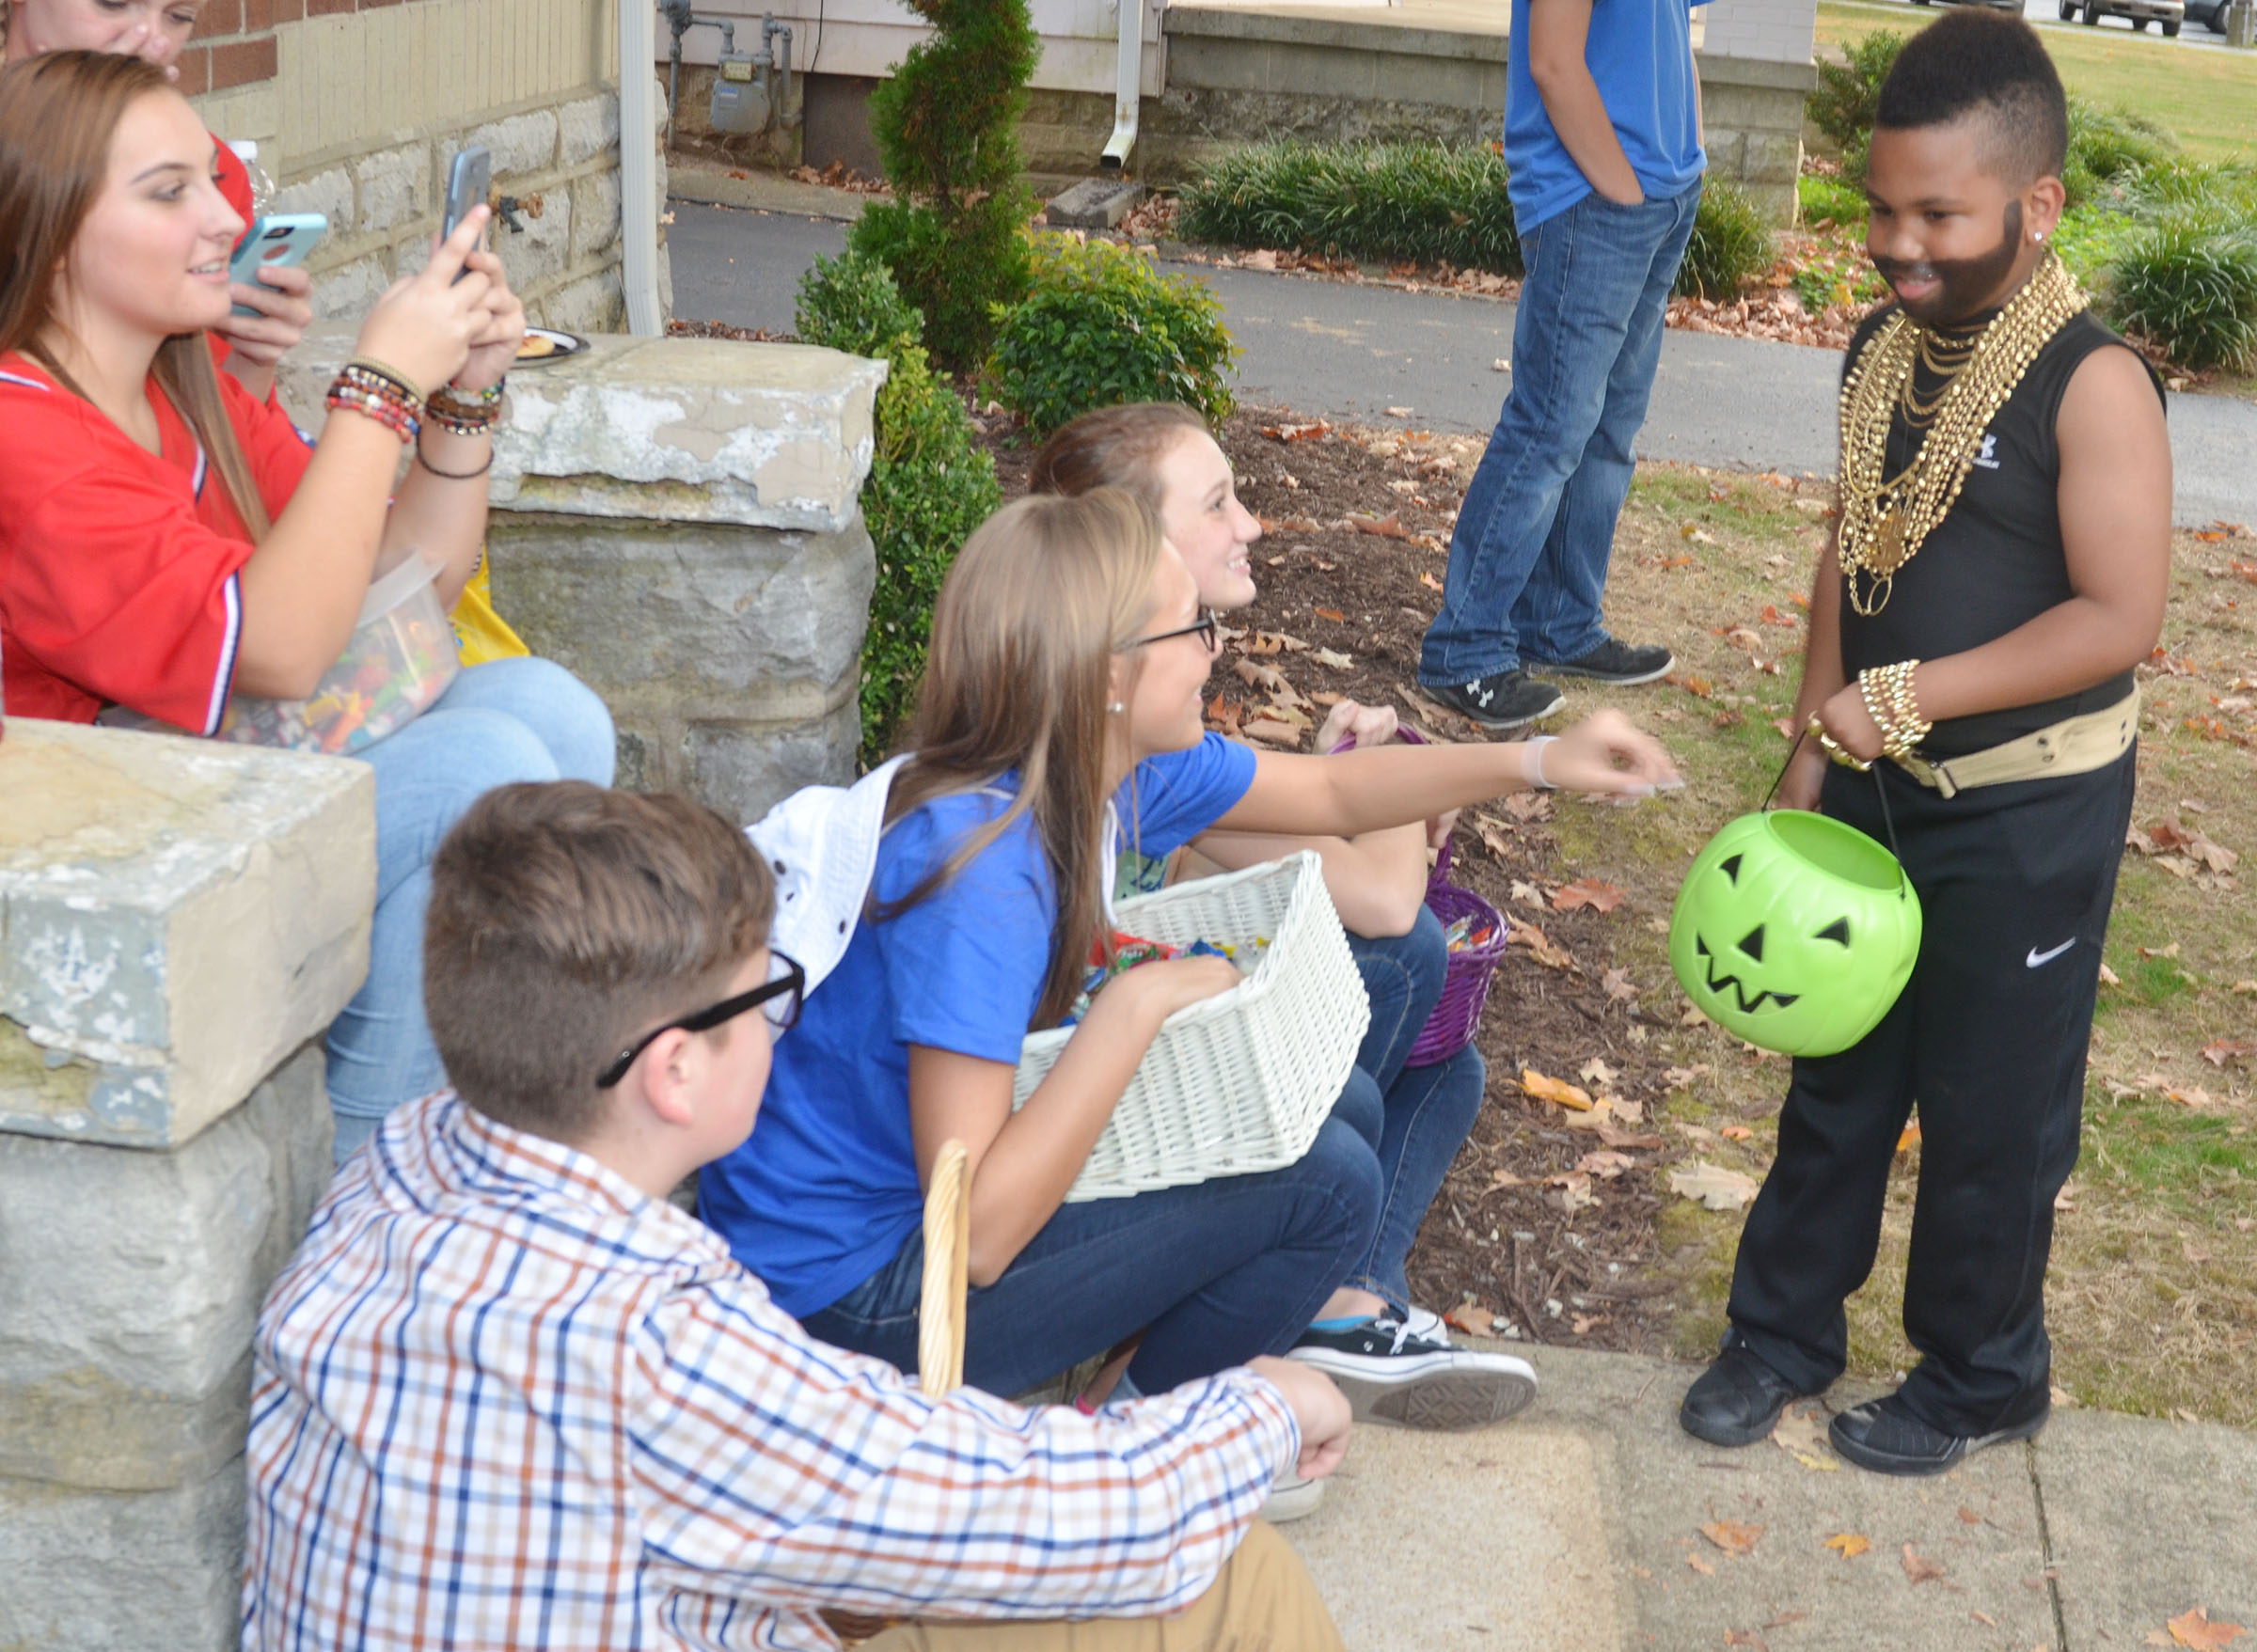 CHS KYA members, from left, freshman Gavin Johnson and sophomores Tatem Wiseman and Salena Ritchie pass out Halloween candy to Campbellsville Middle School fifth-grader Devin Kinser, as sophomore Reagan Knight takes a photo of his Mr. T costume.